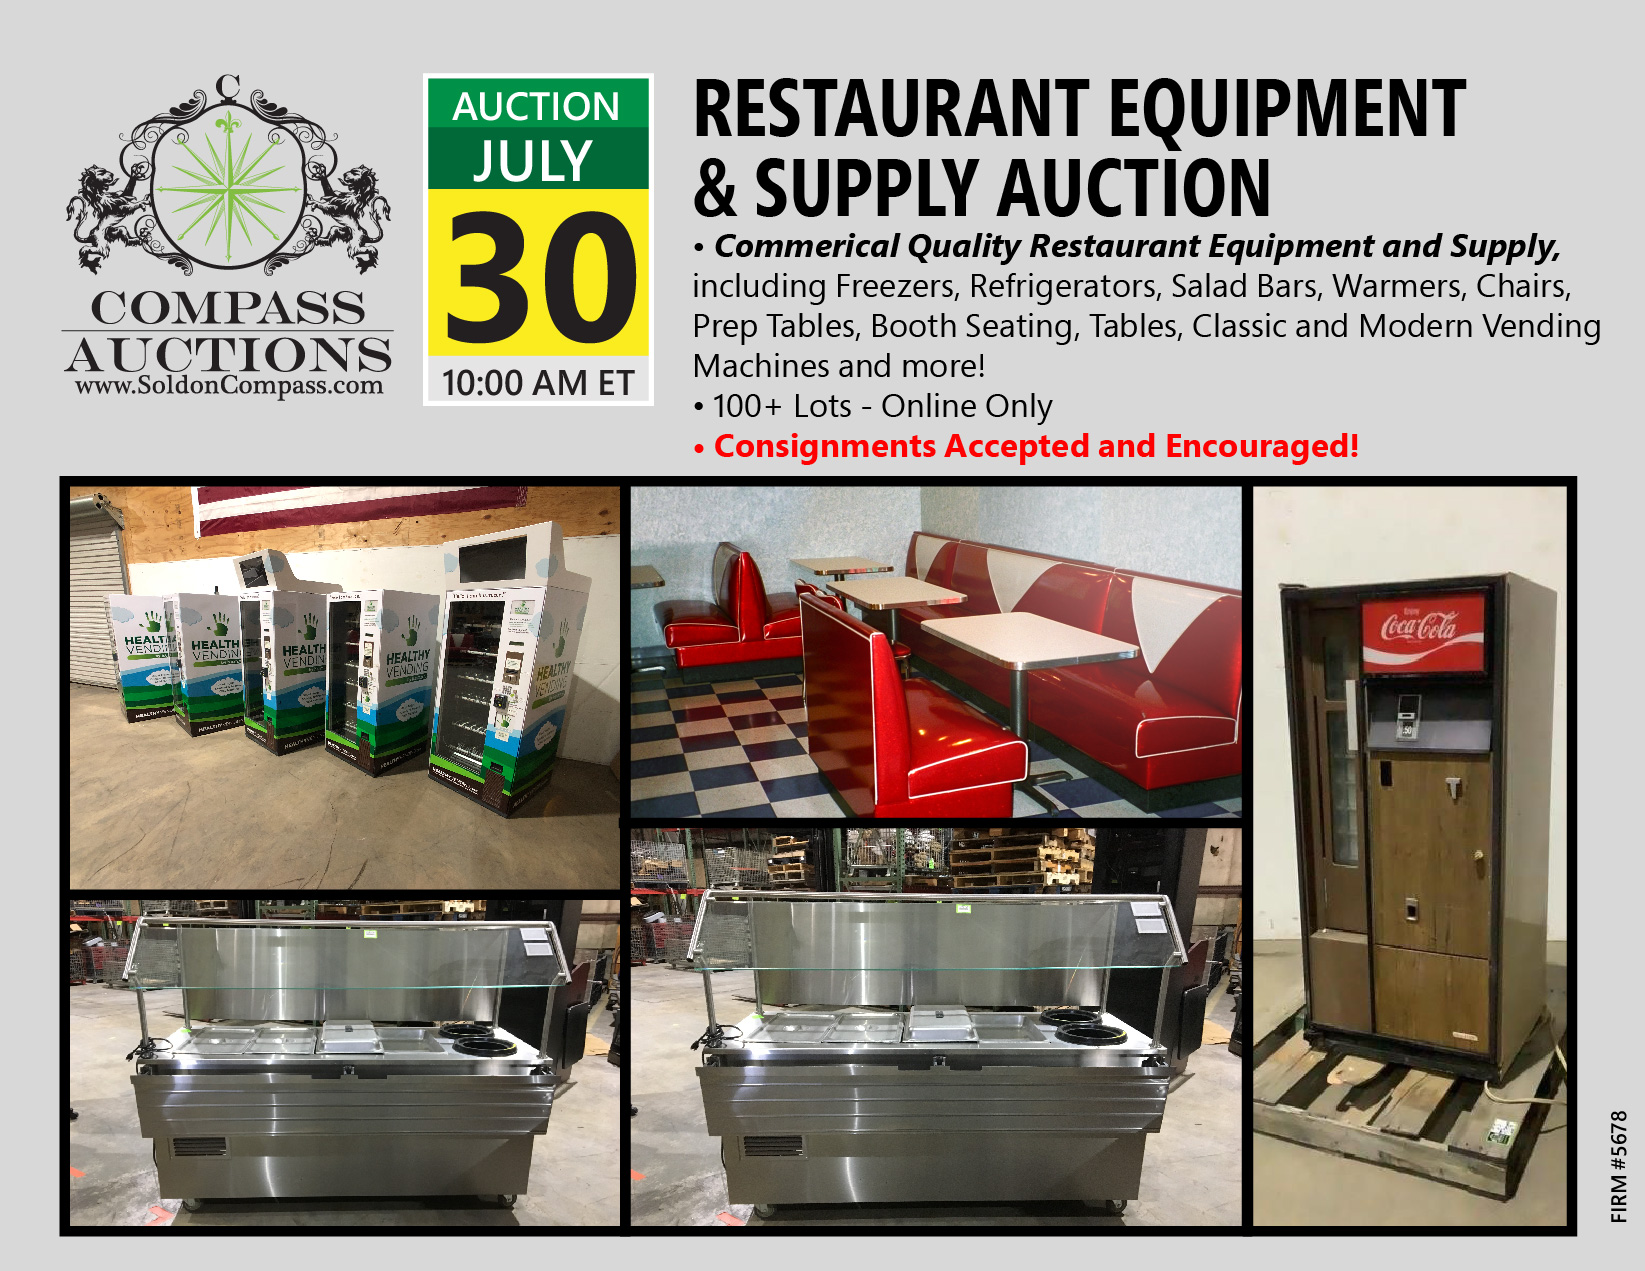 Restaurant Equipment And Supply Auction Compass Auctions